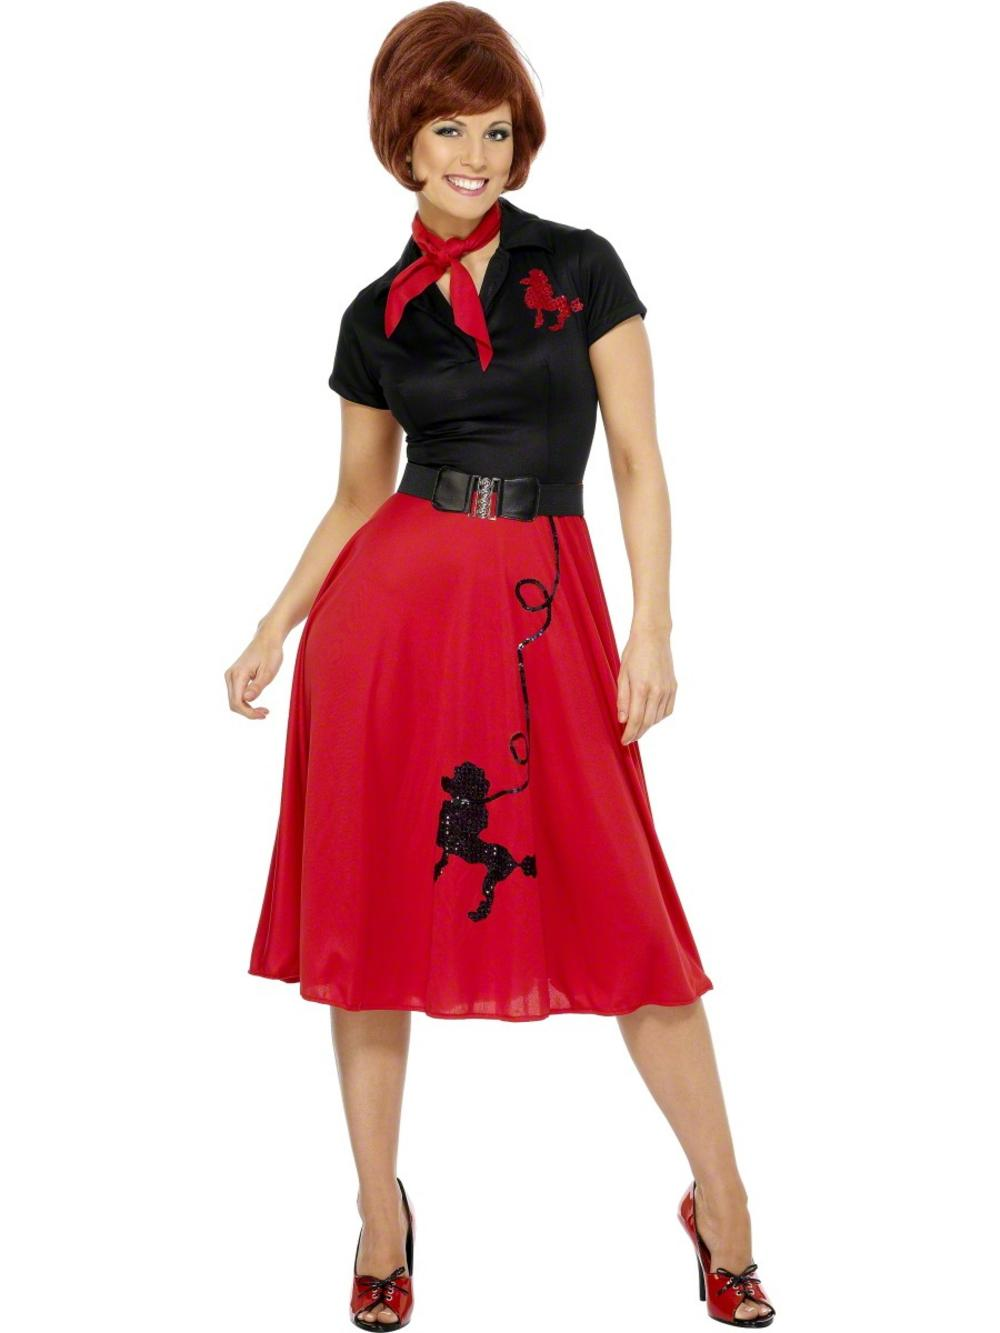 50s Poodle Costume